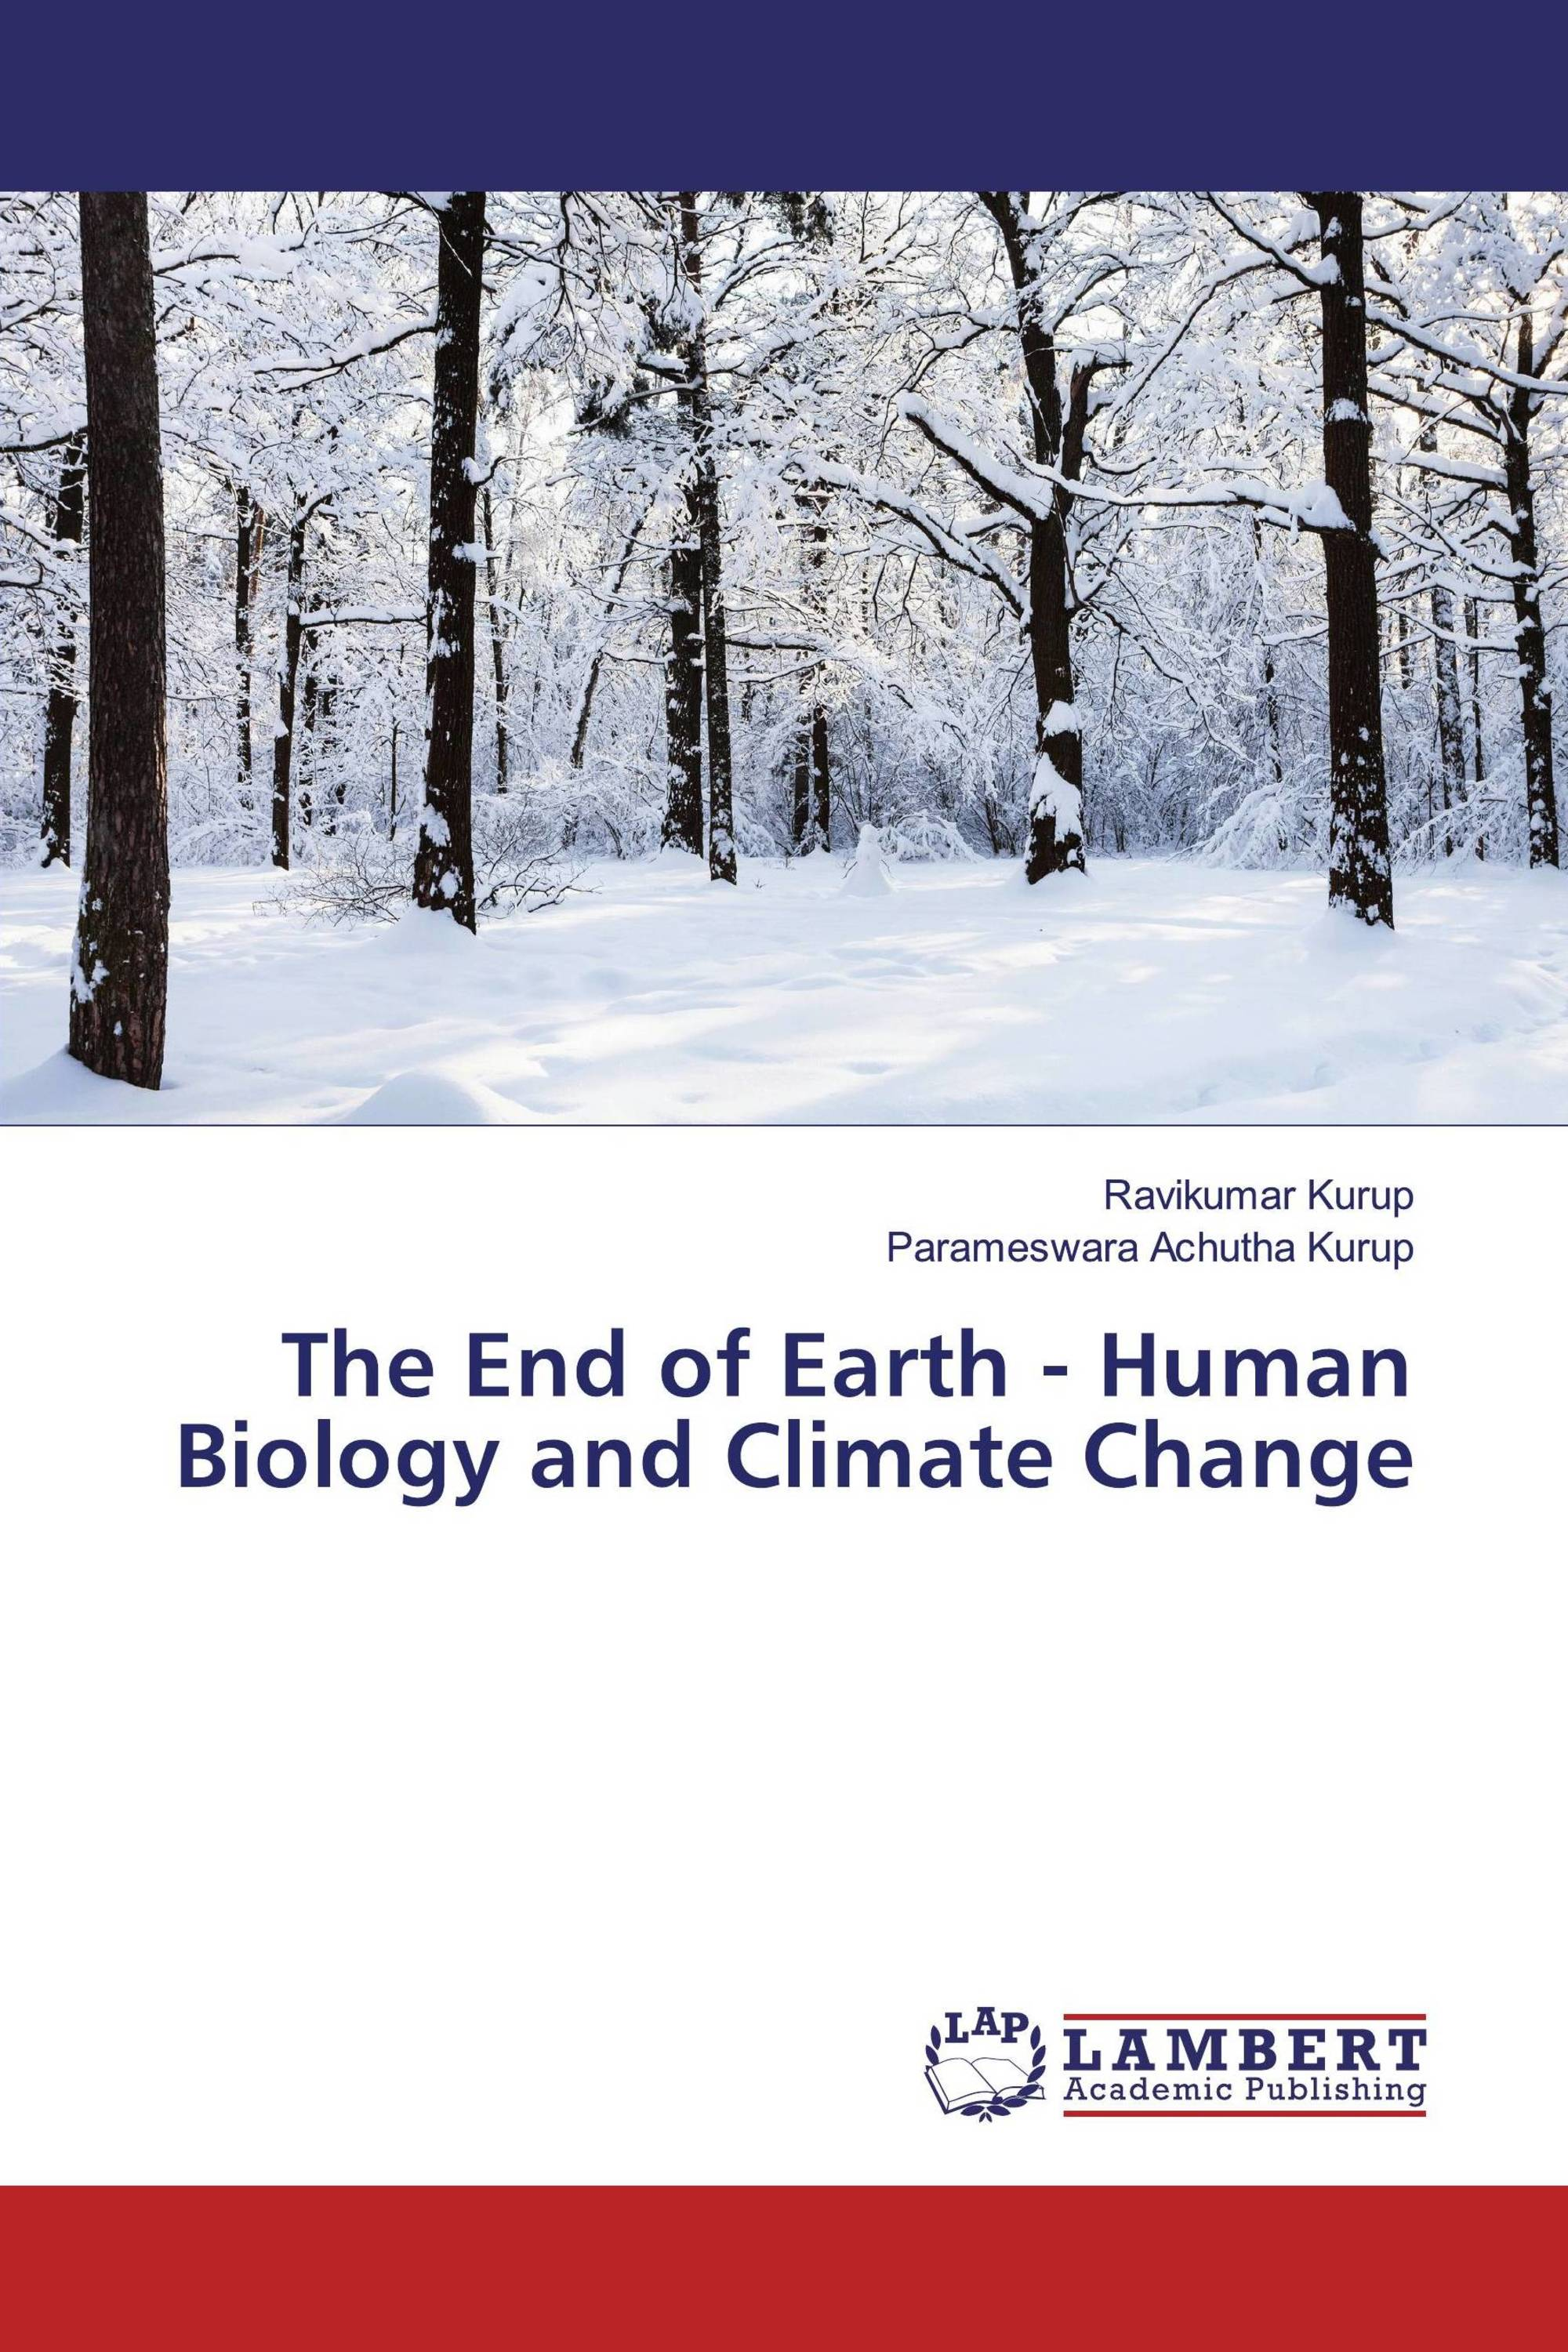 The End of Earth - Human Biology and Climate Change